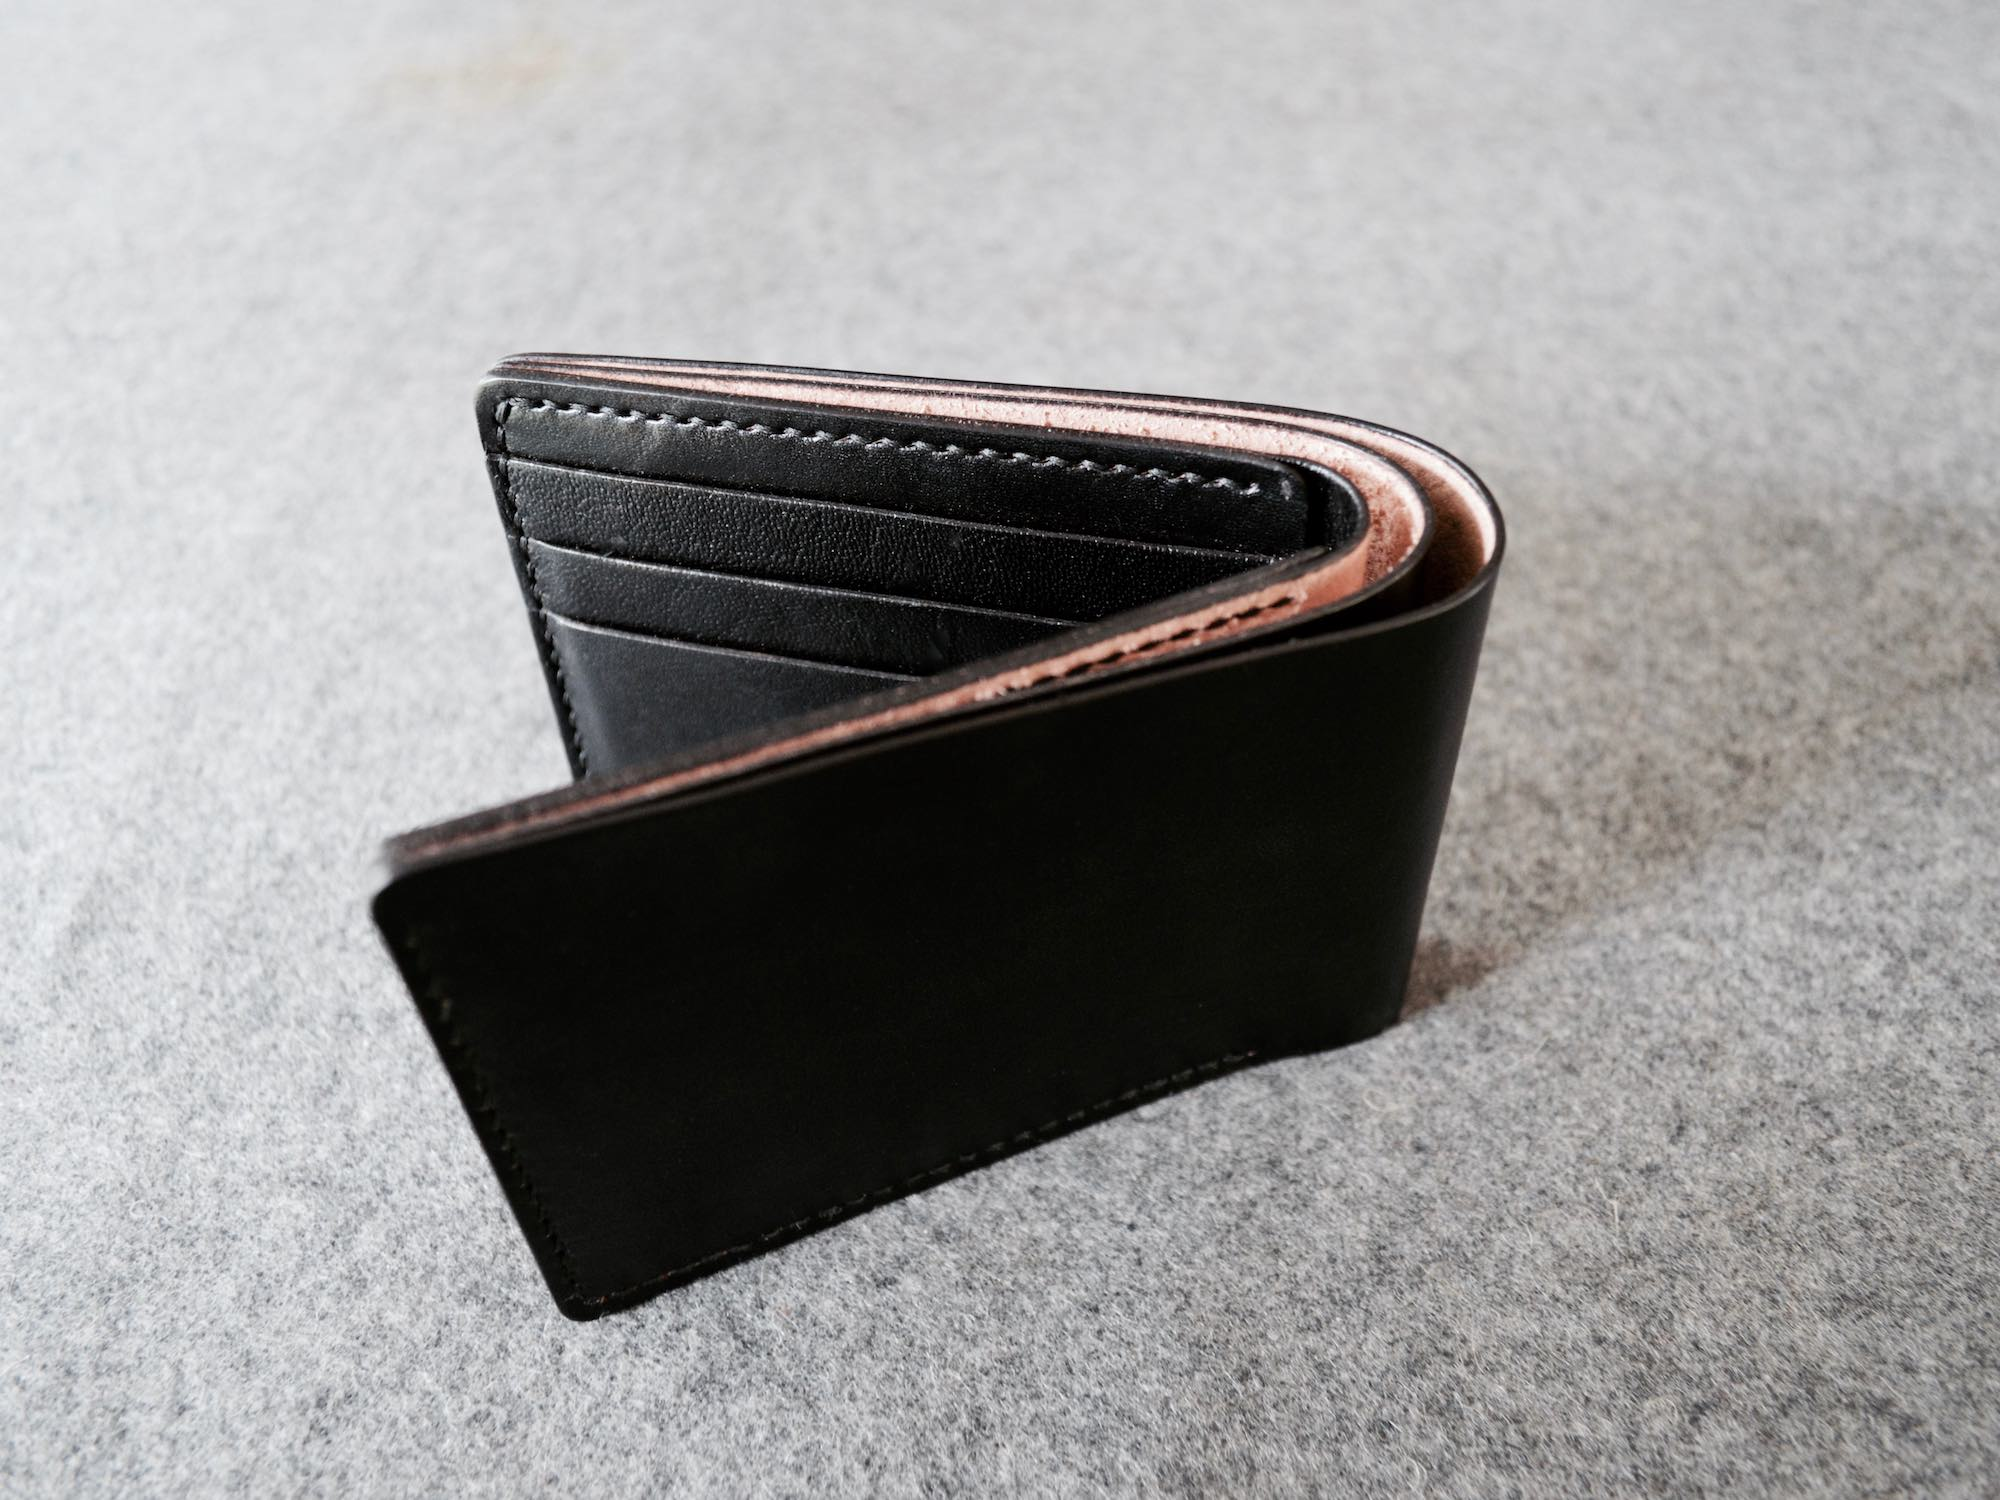 Full Grain Black Leather Wallet. Handmade with Italian vegetable tanned leather. 6-10 cards and lots of cash